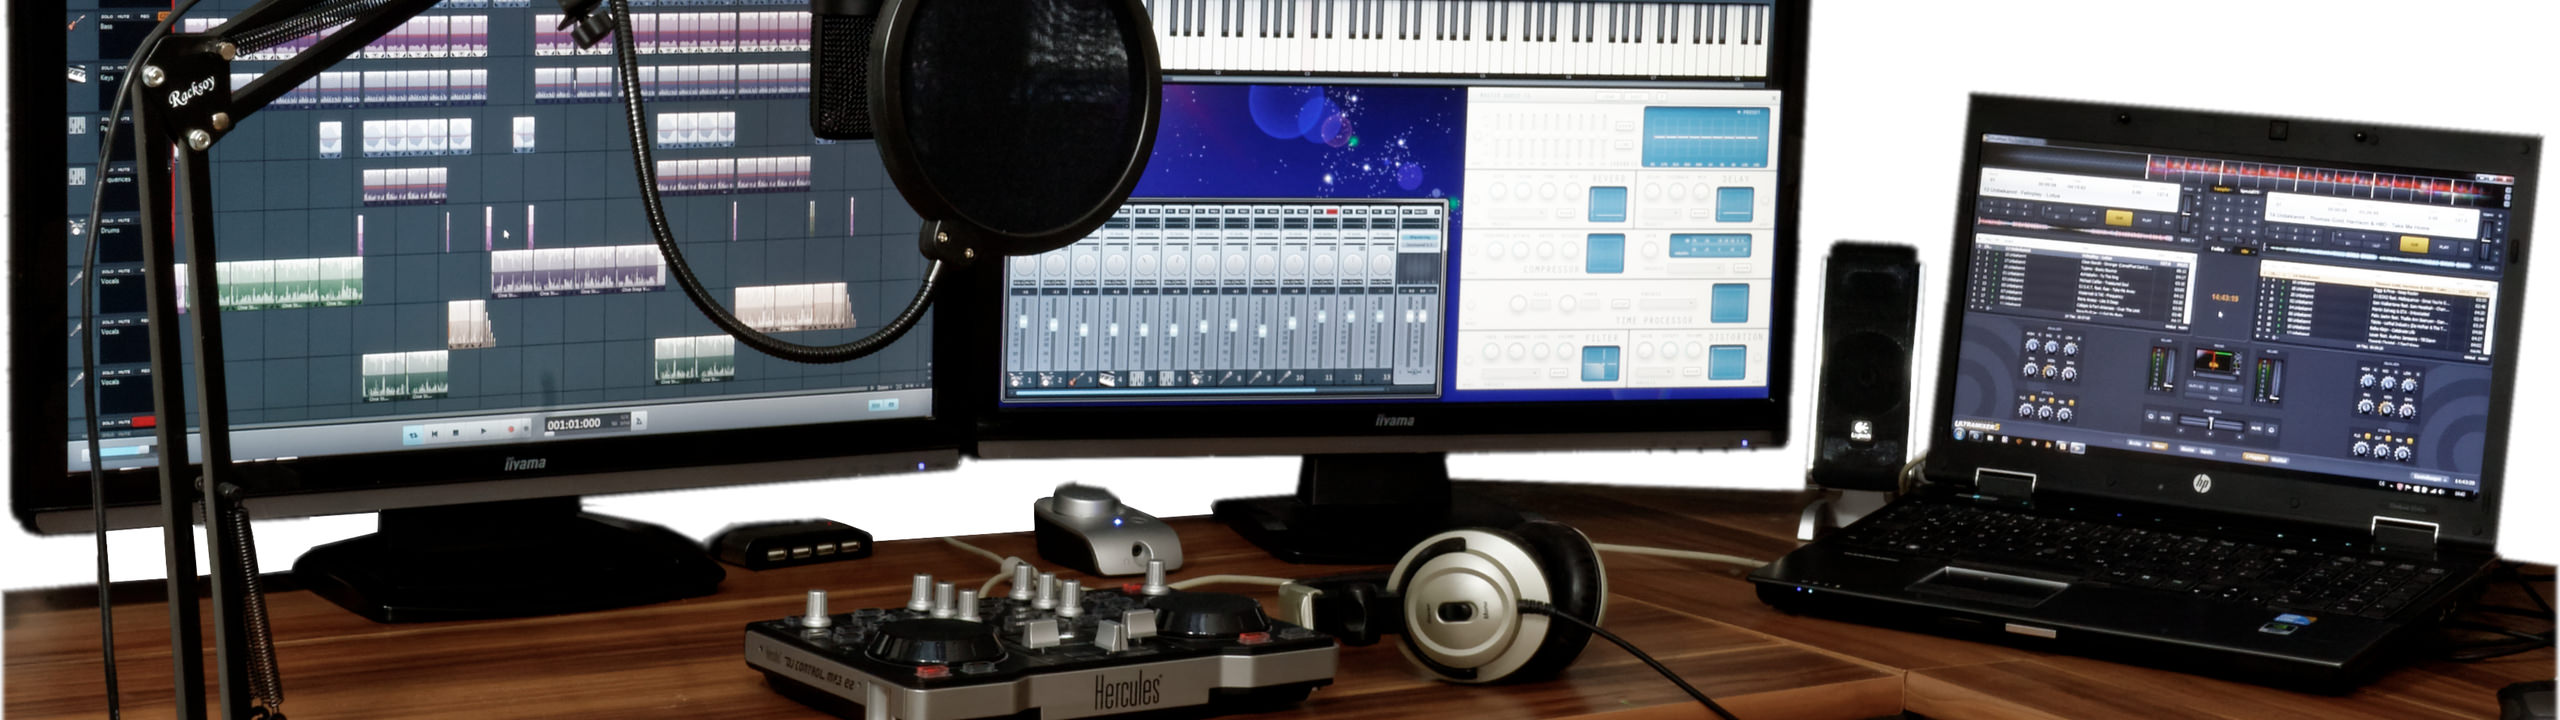 Home Recording Studio 2560 By 720